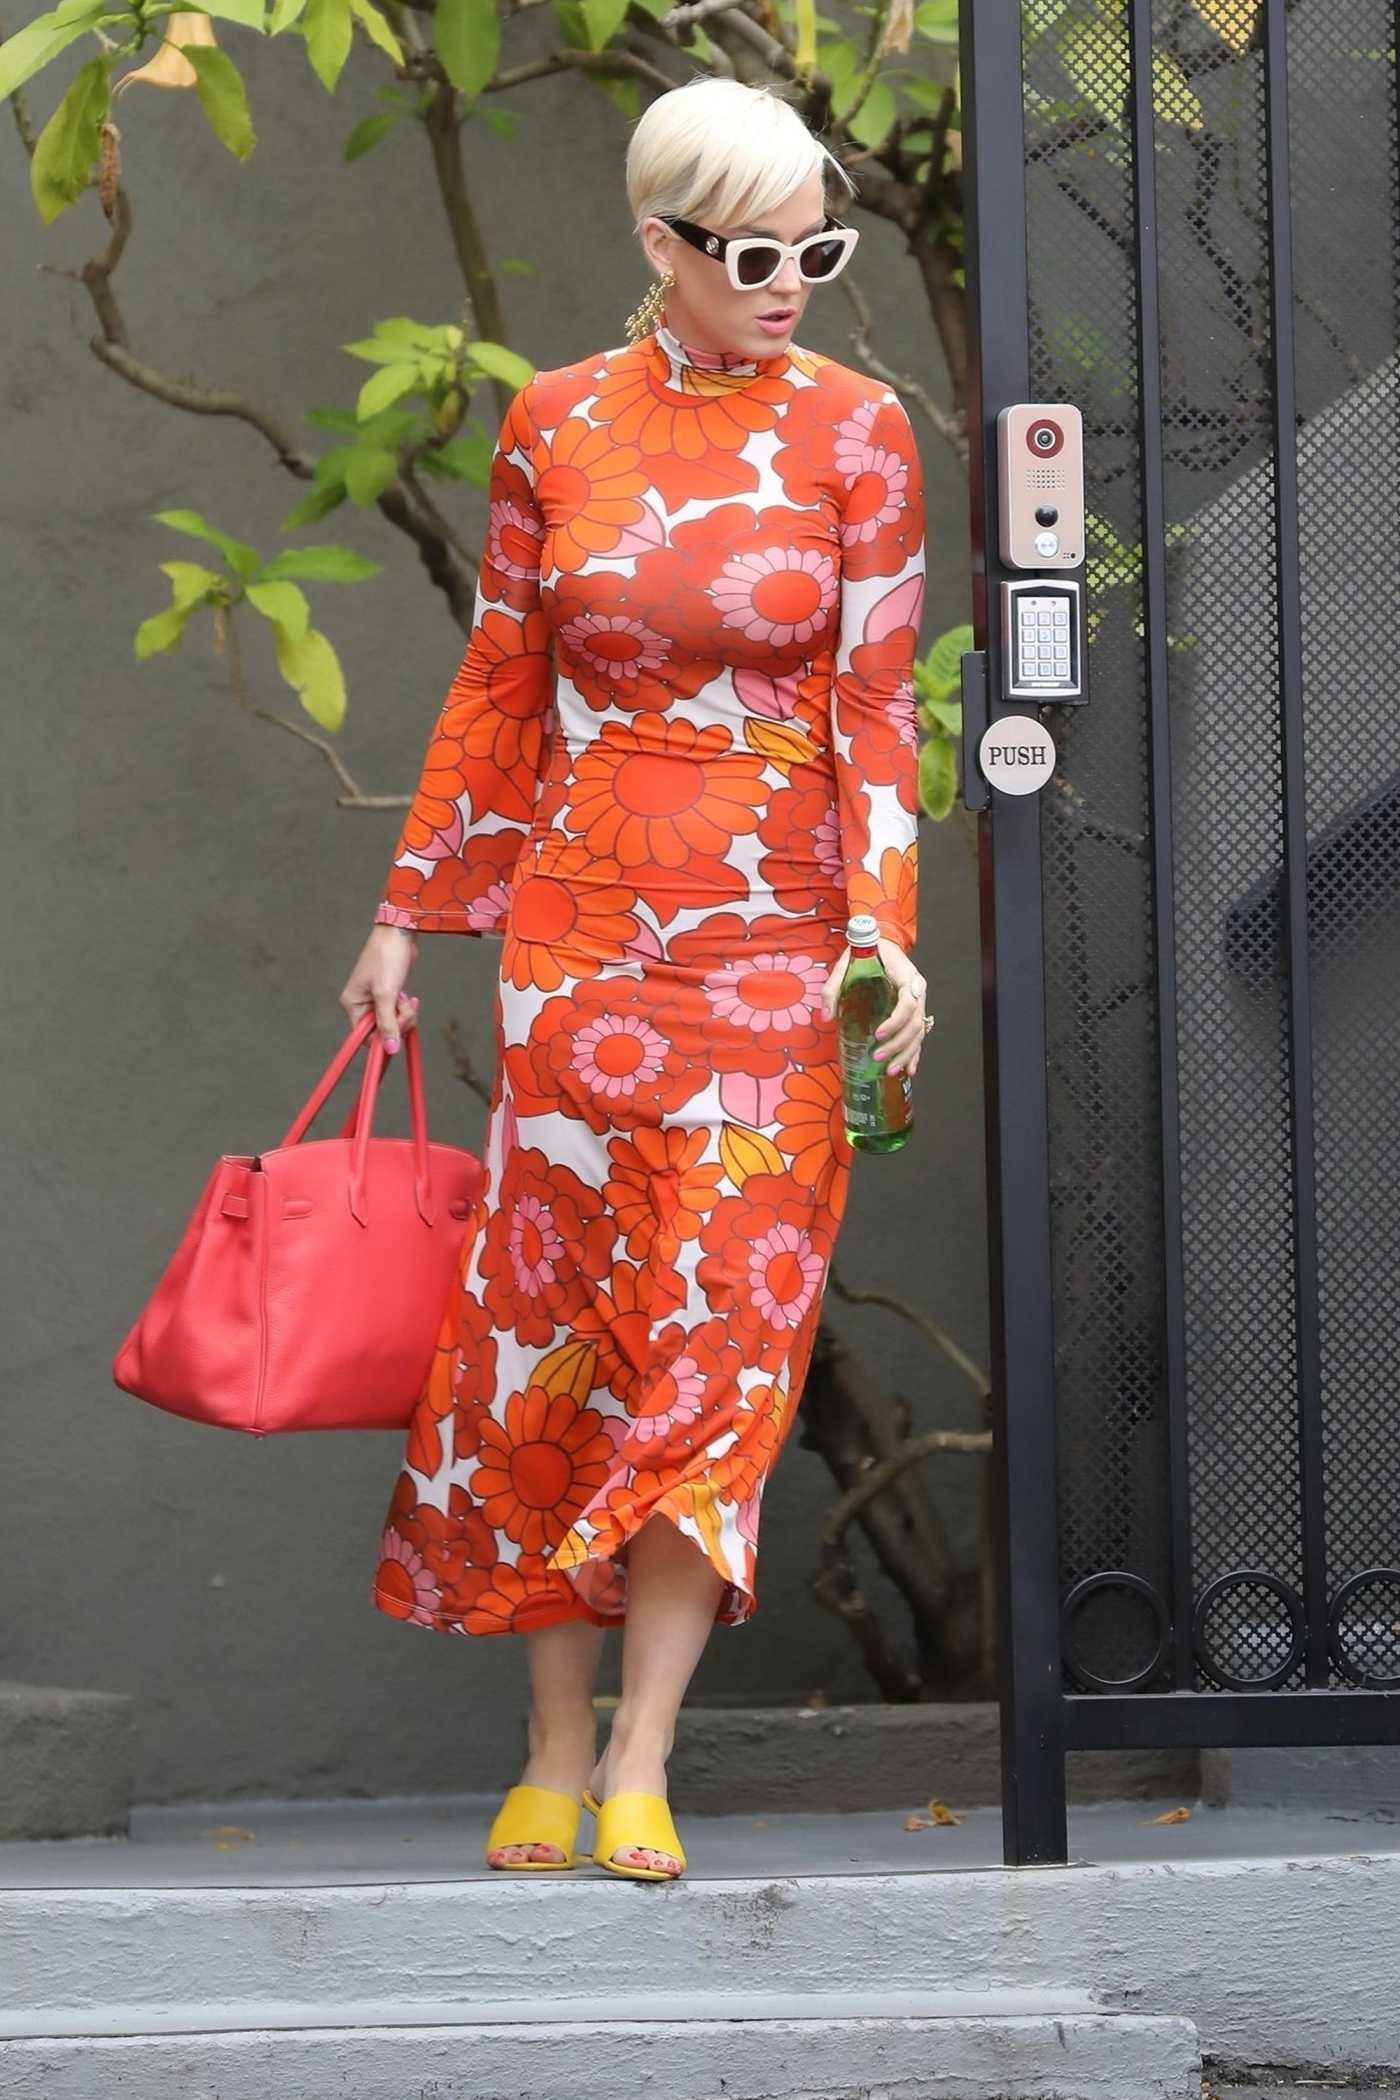 Katy Perry in a Red Floral Dress Was Seen Out in Los Angeles 06/03/2019